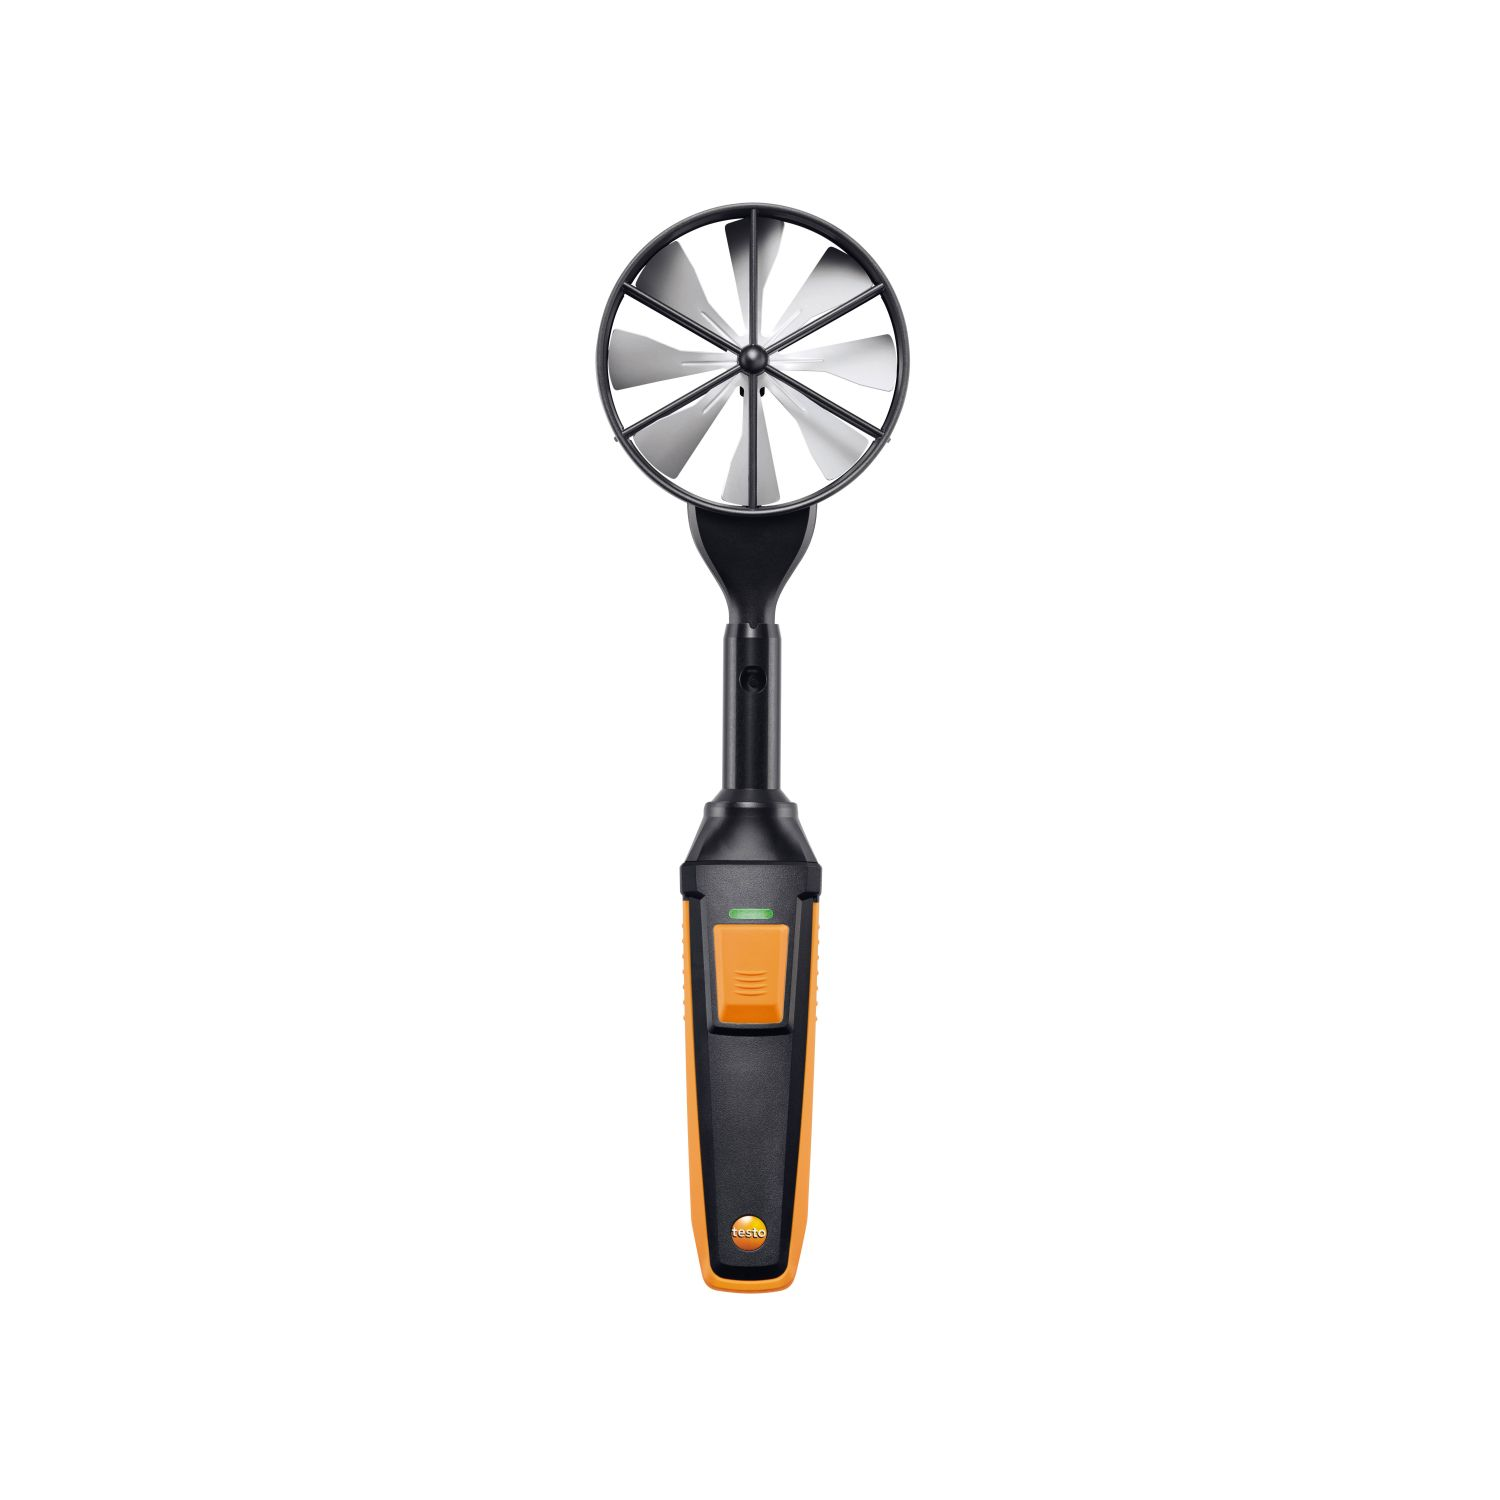 Testo 400 4 inch High-precision vane probe with Bluetooth , including temperature sensor